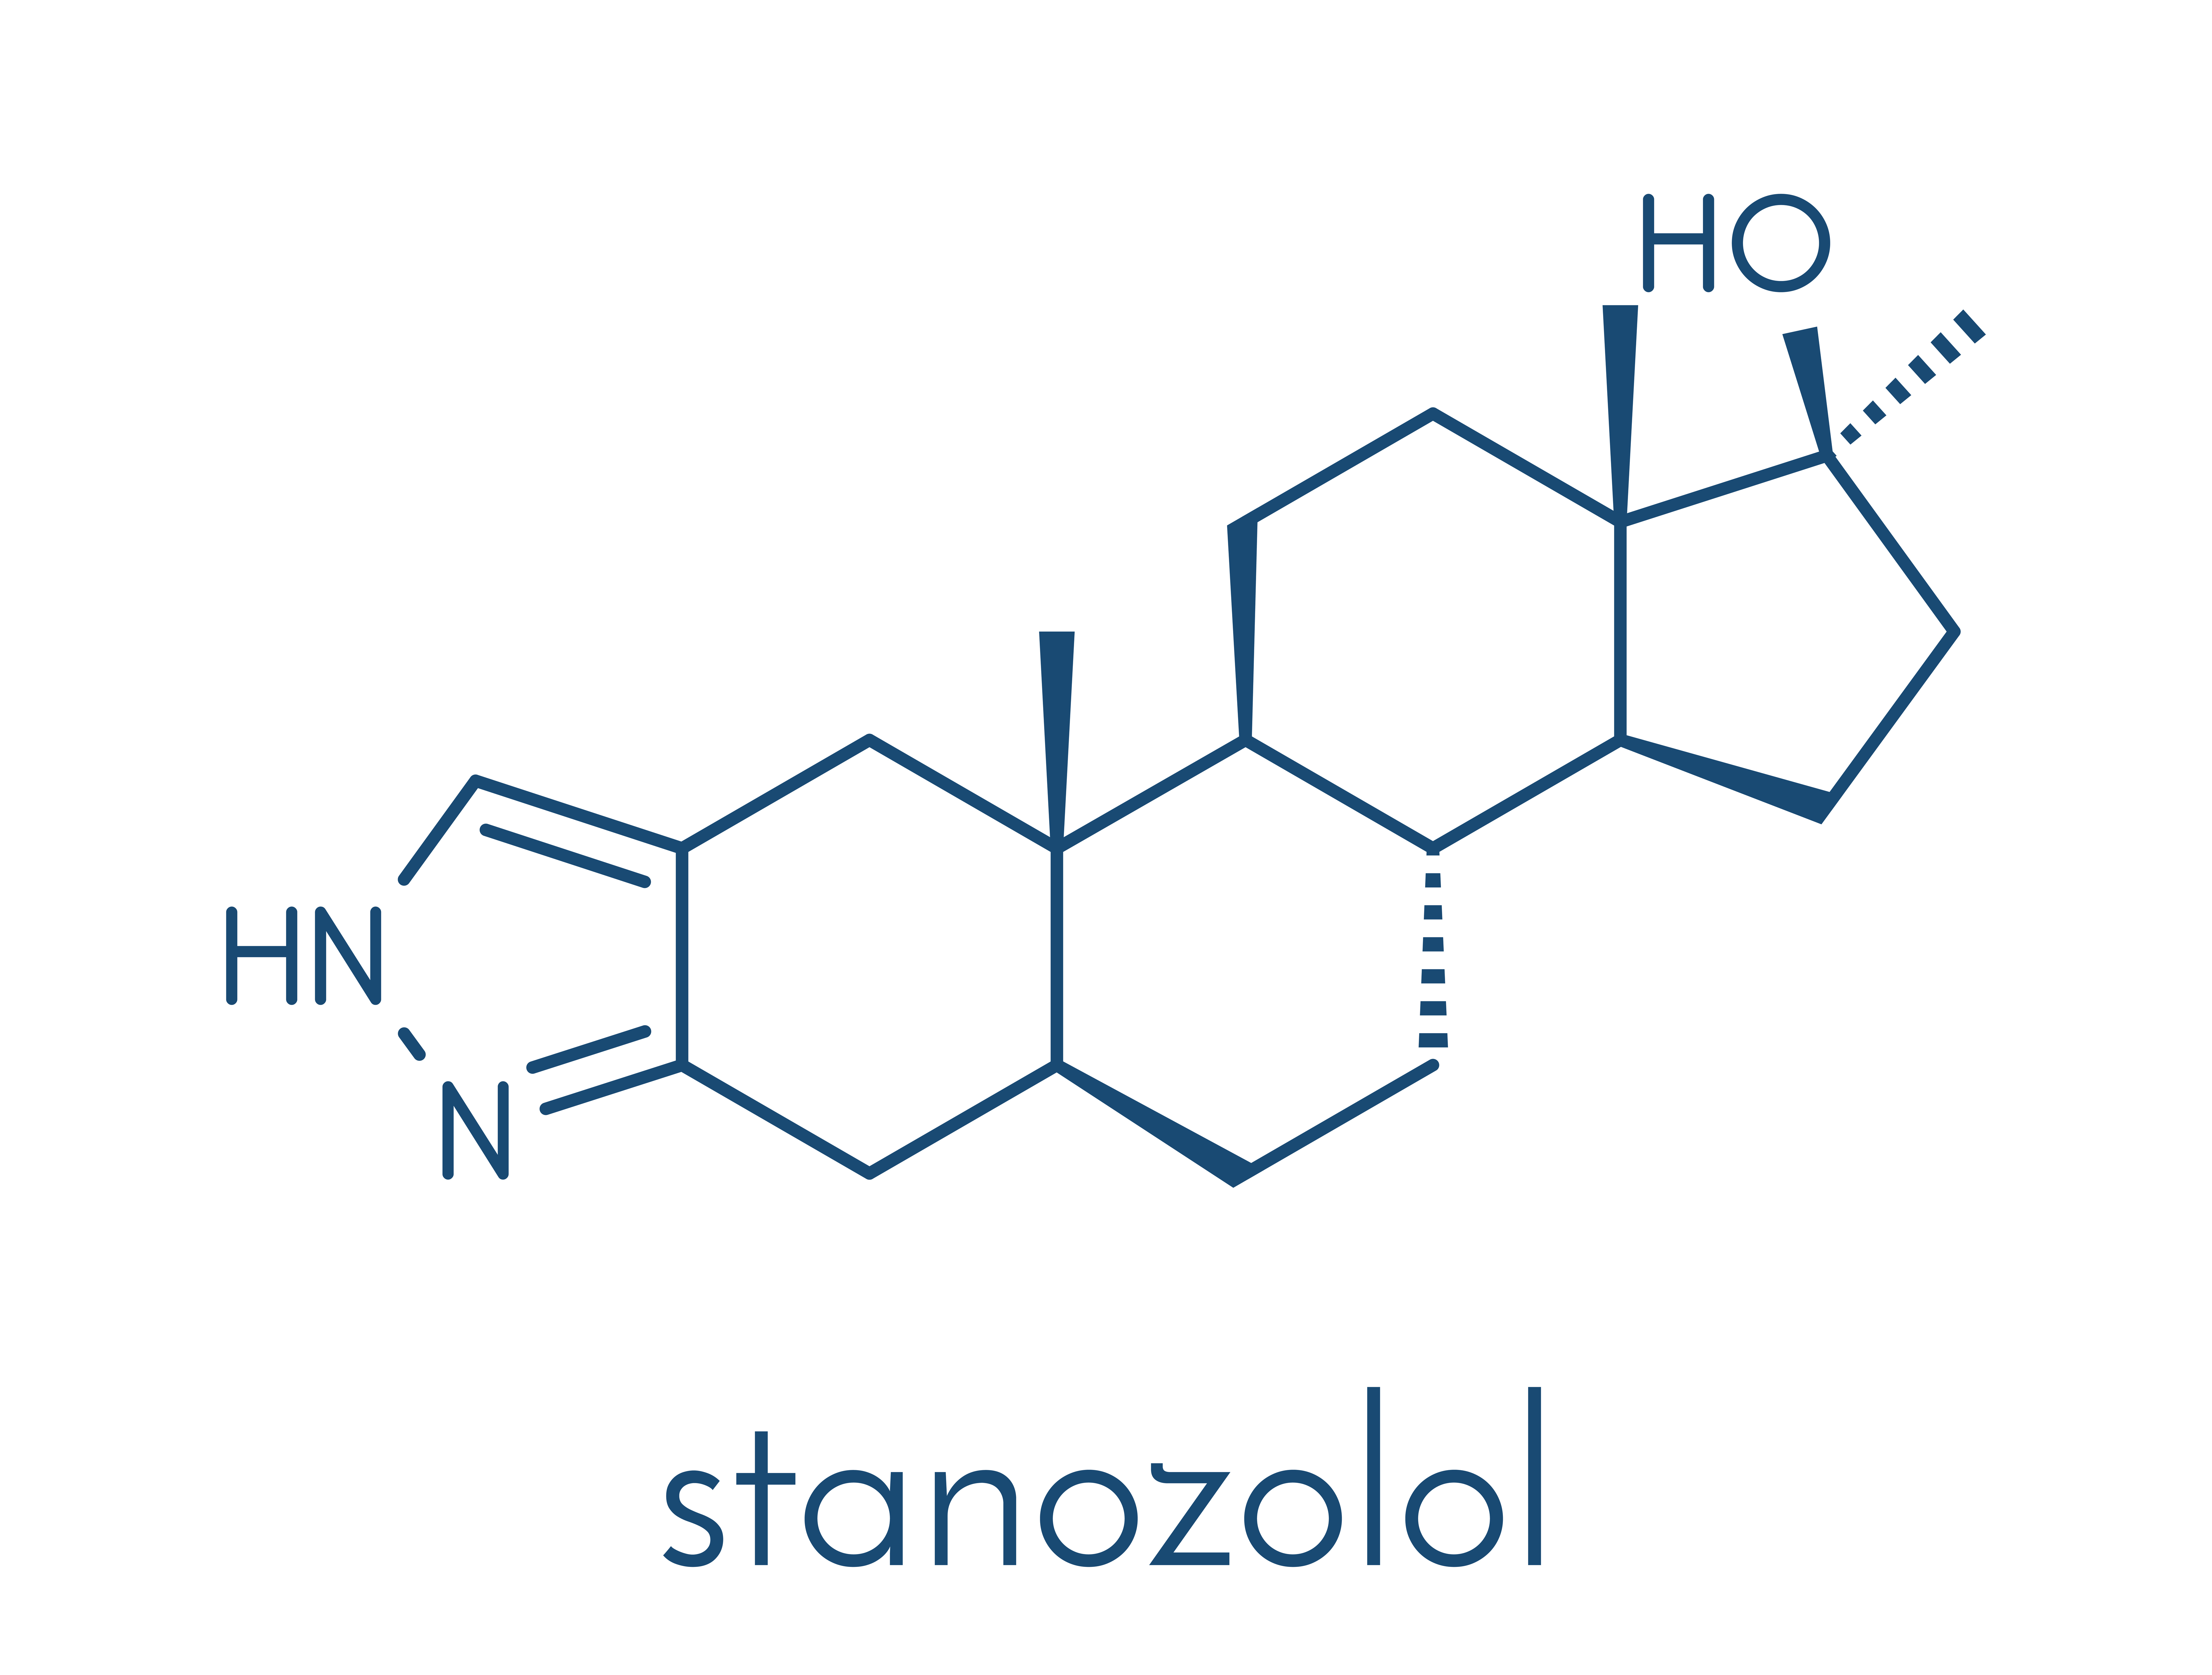 Stanozolol (Winstrol) chemical structure